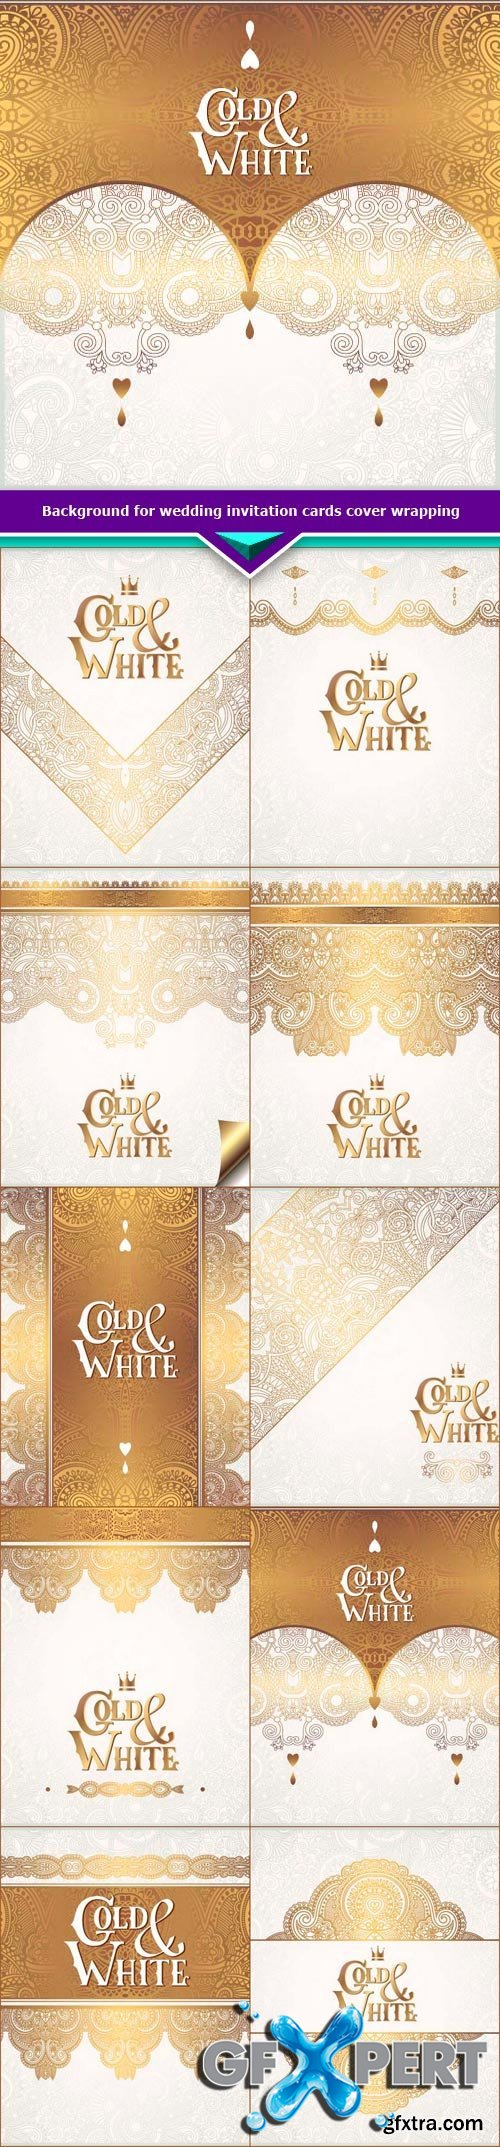 Background for wedding invitation cards cover wrapping 10x EPS